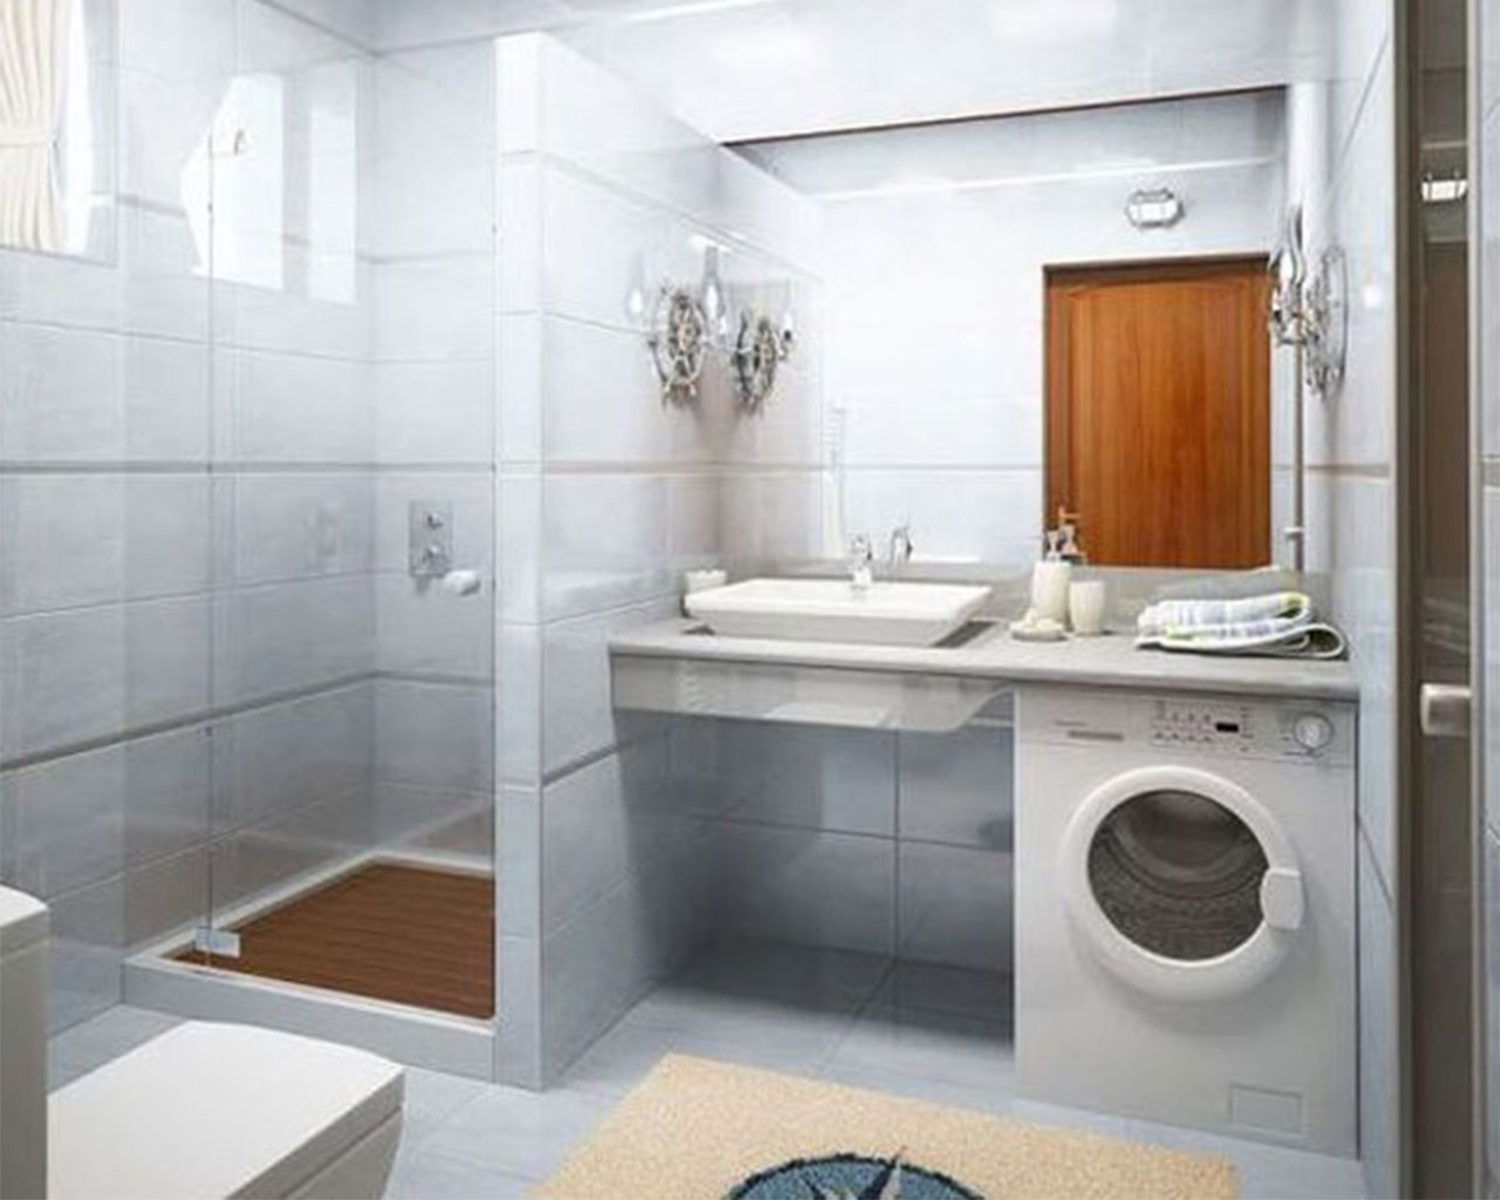 Superbe Download Simple Bathroom Design Idea With Washing Machine Image ...